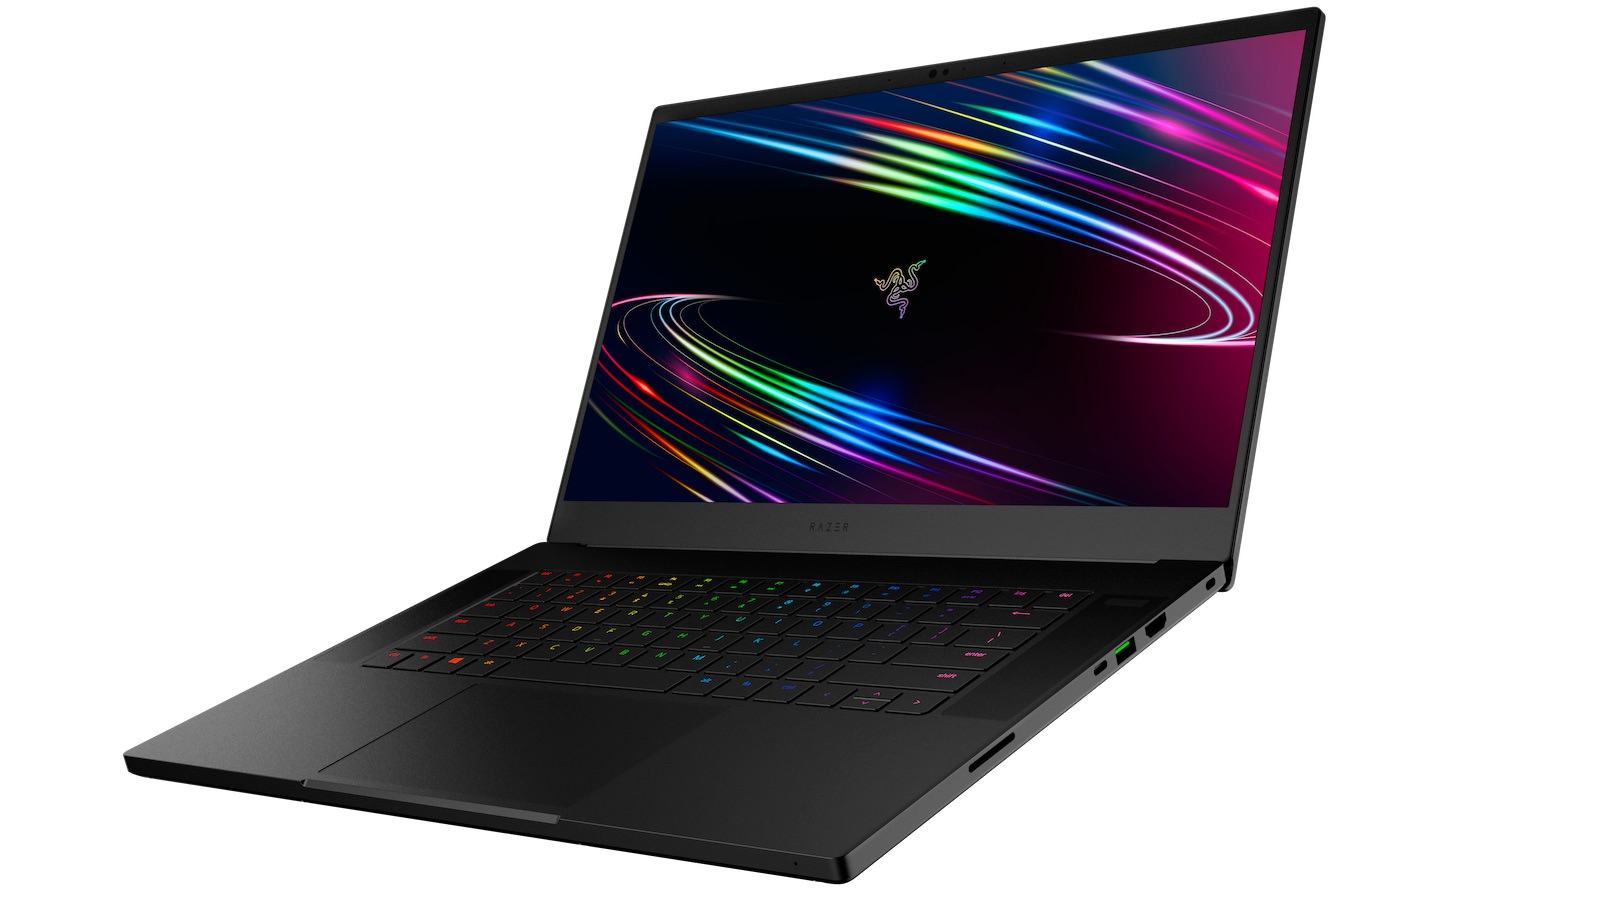 Razer Blade 15 Gaming Laptop (2020 model)